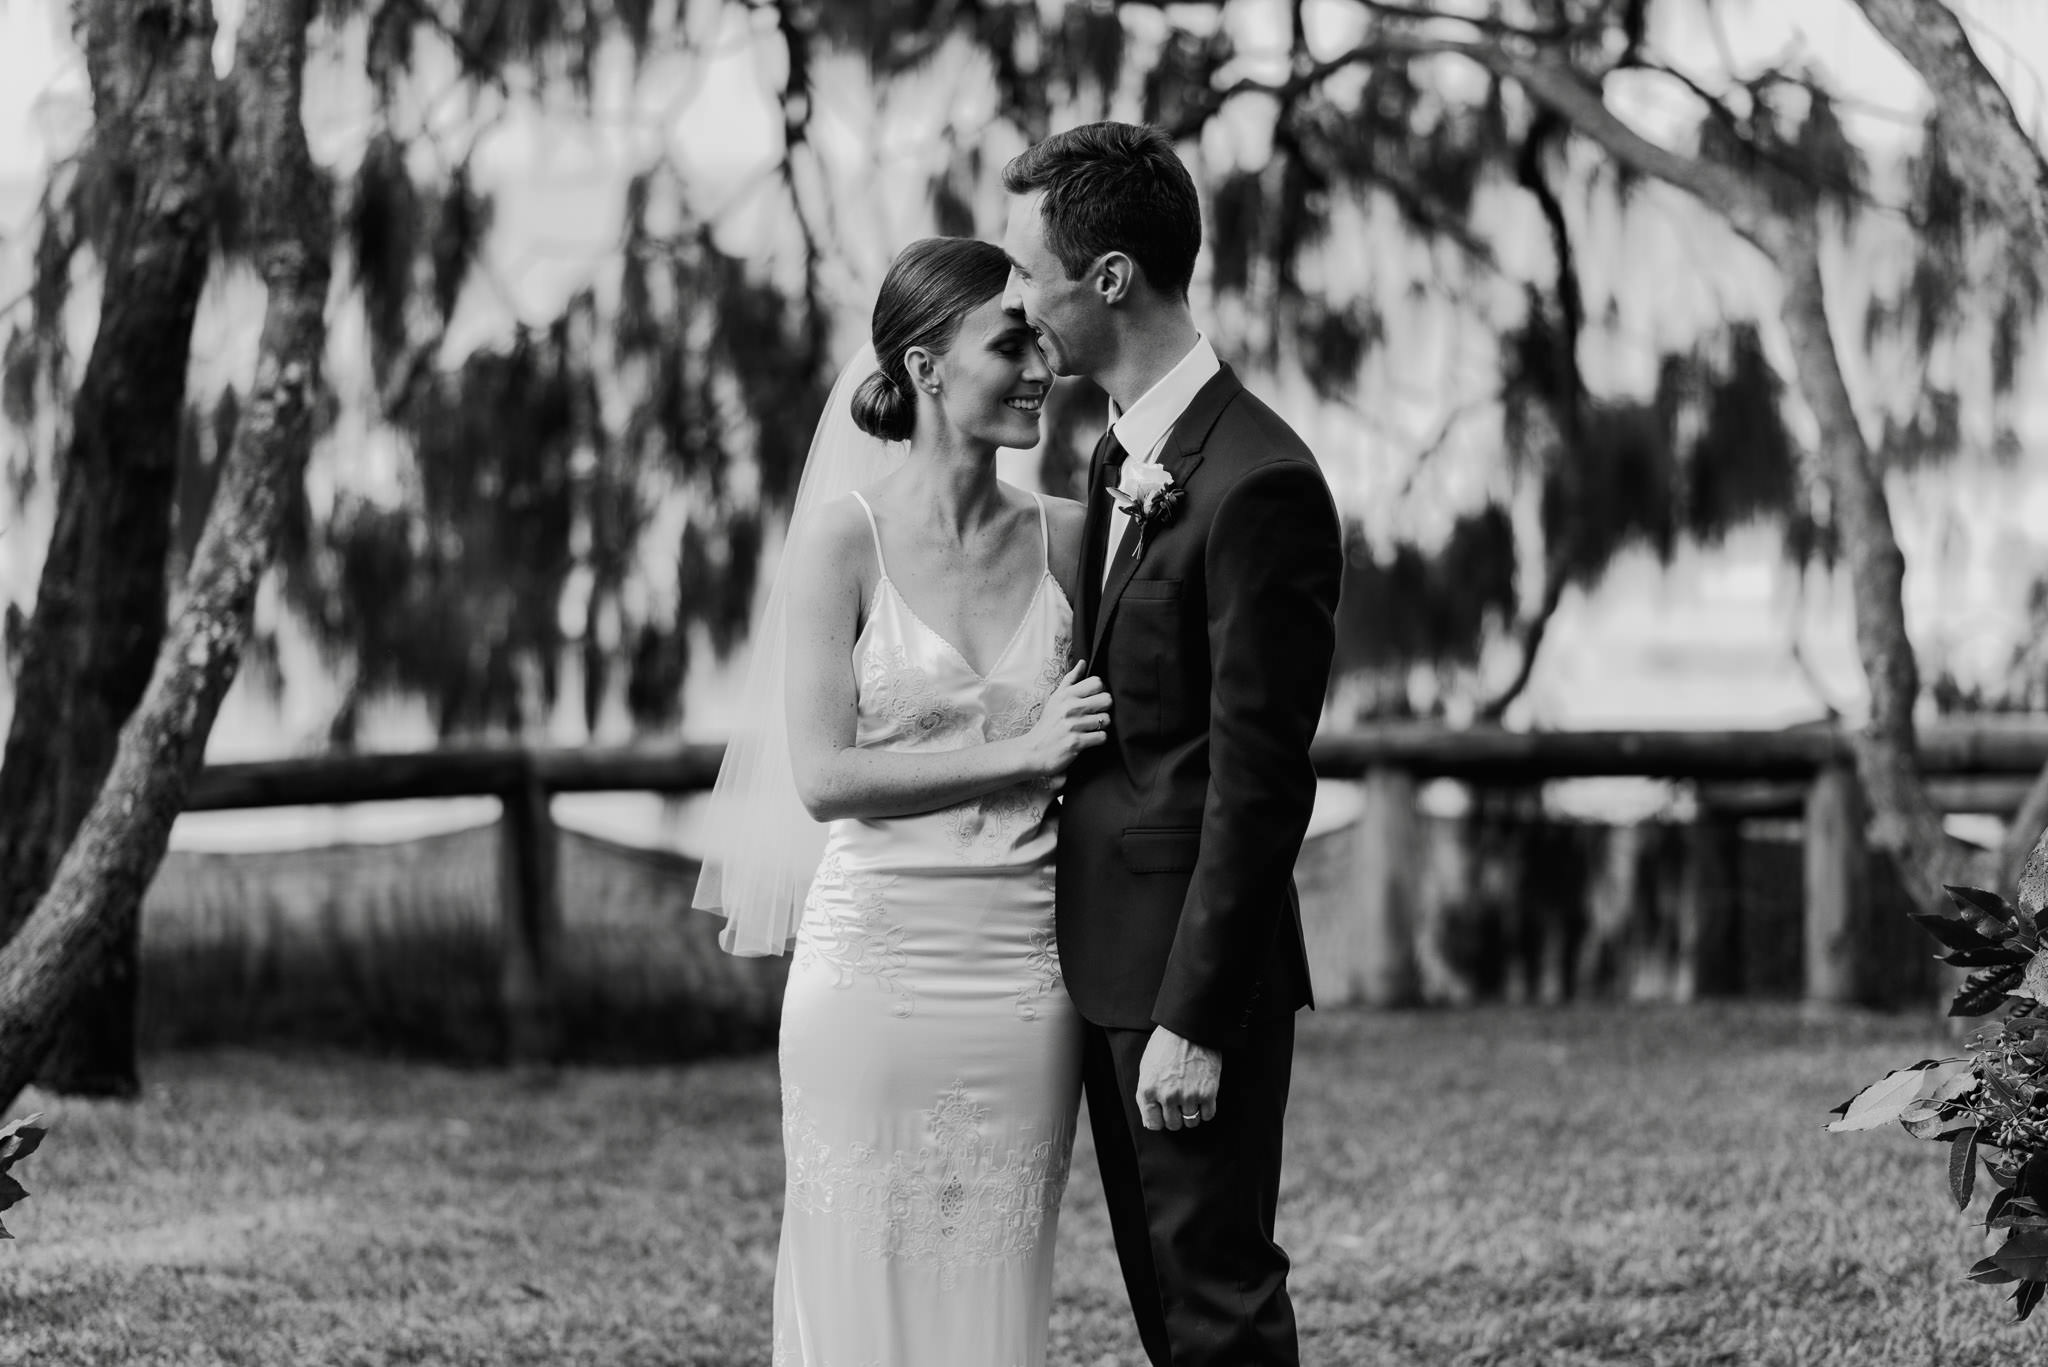 brisbane-wedding-photographer-header-11.jpg